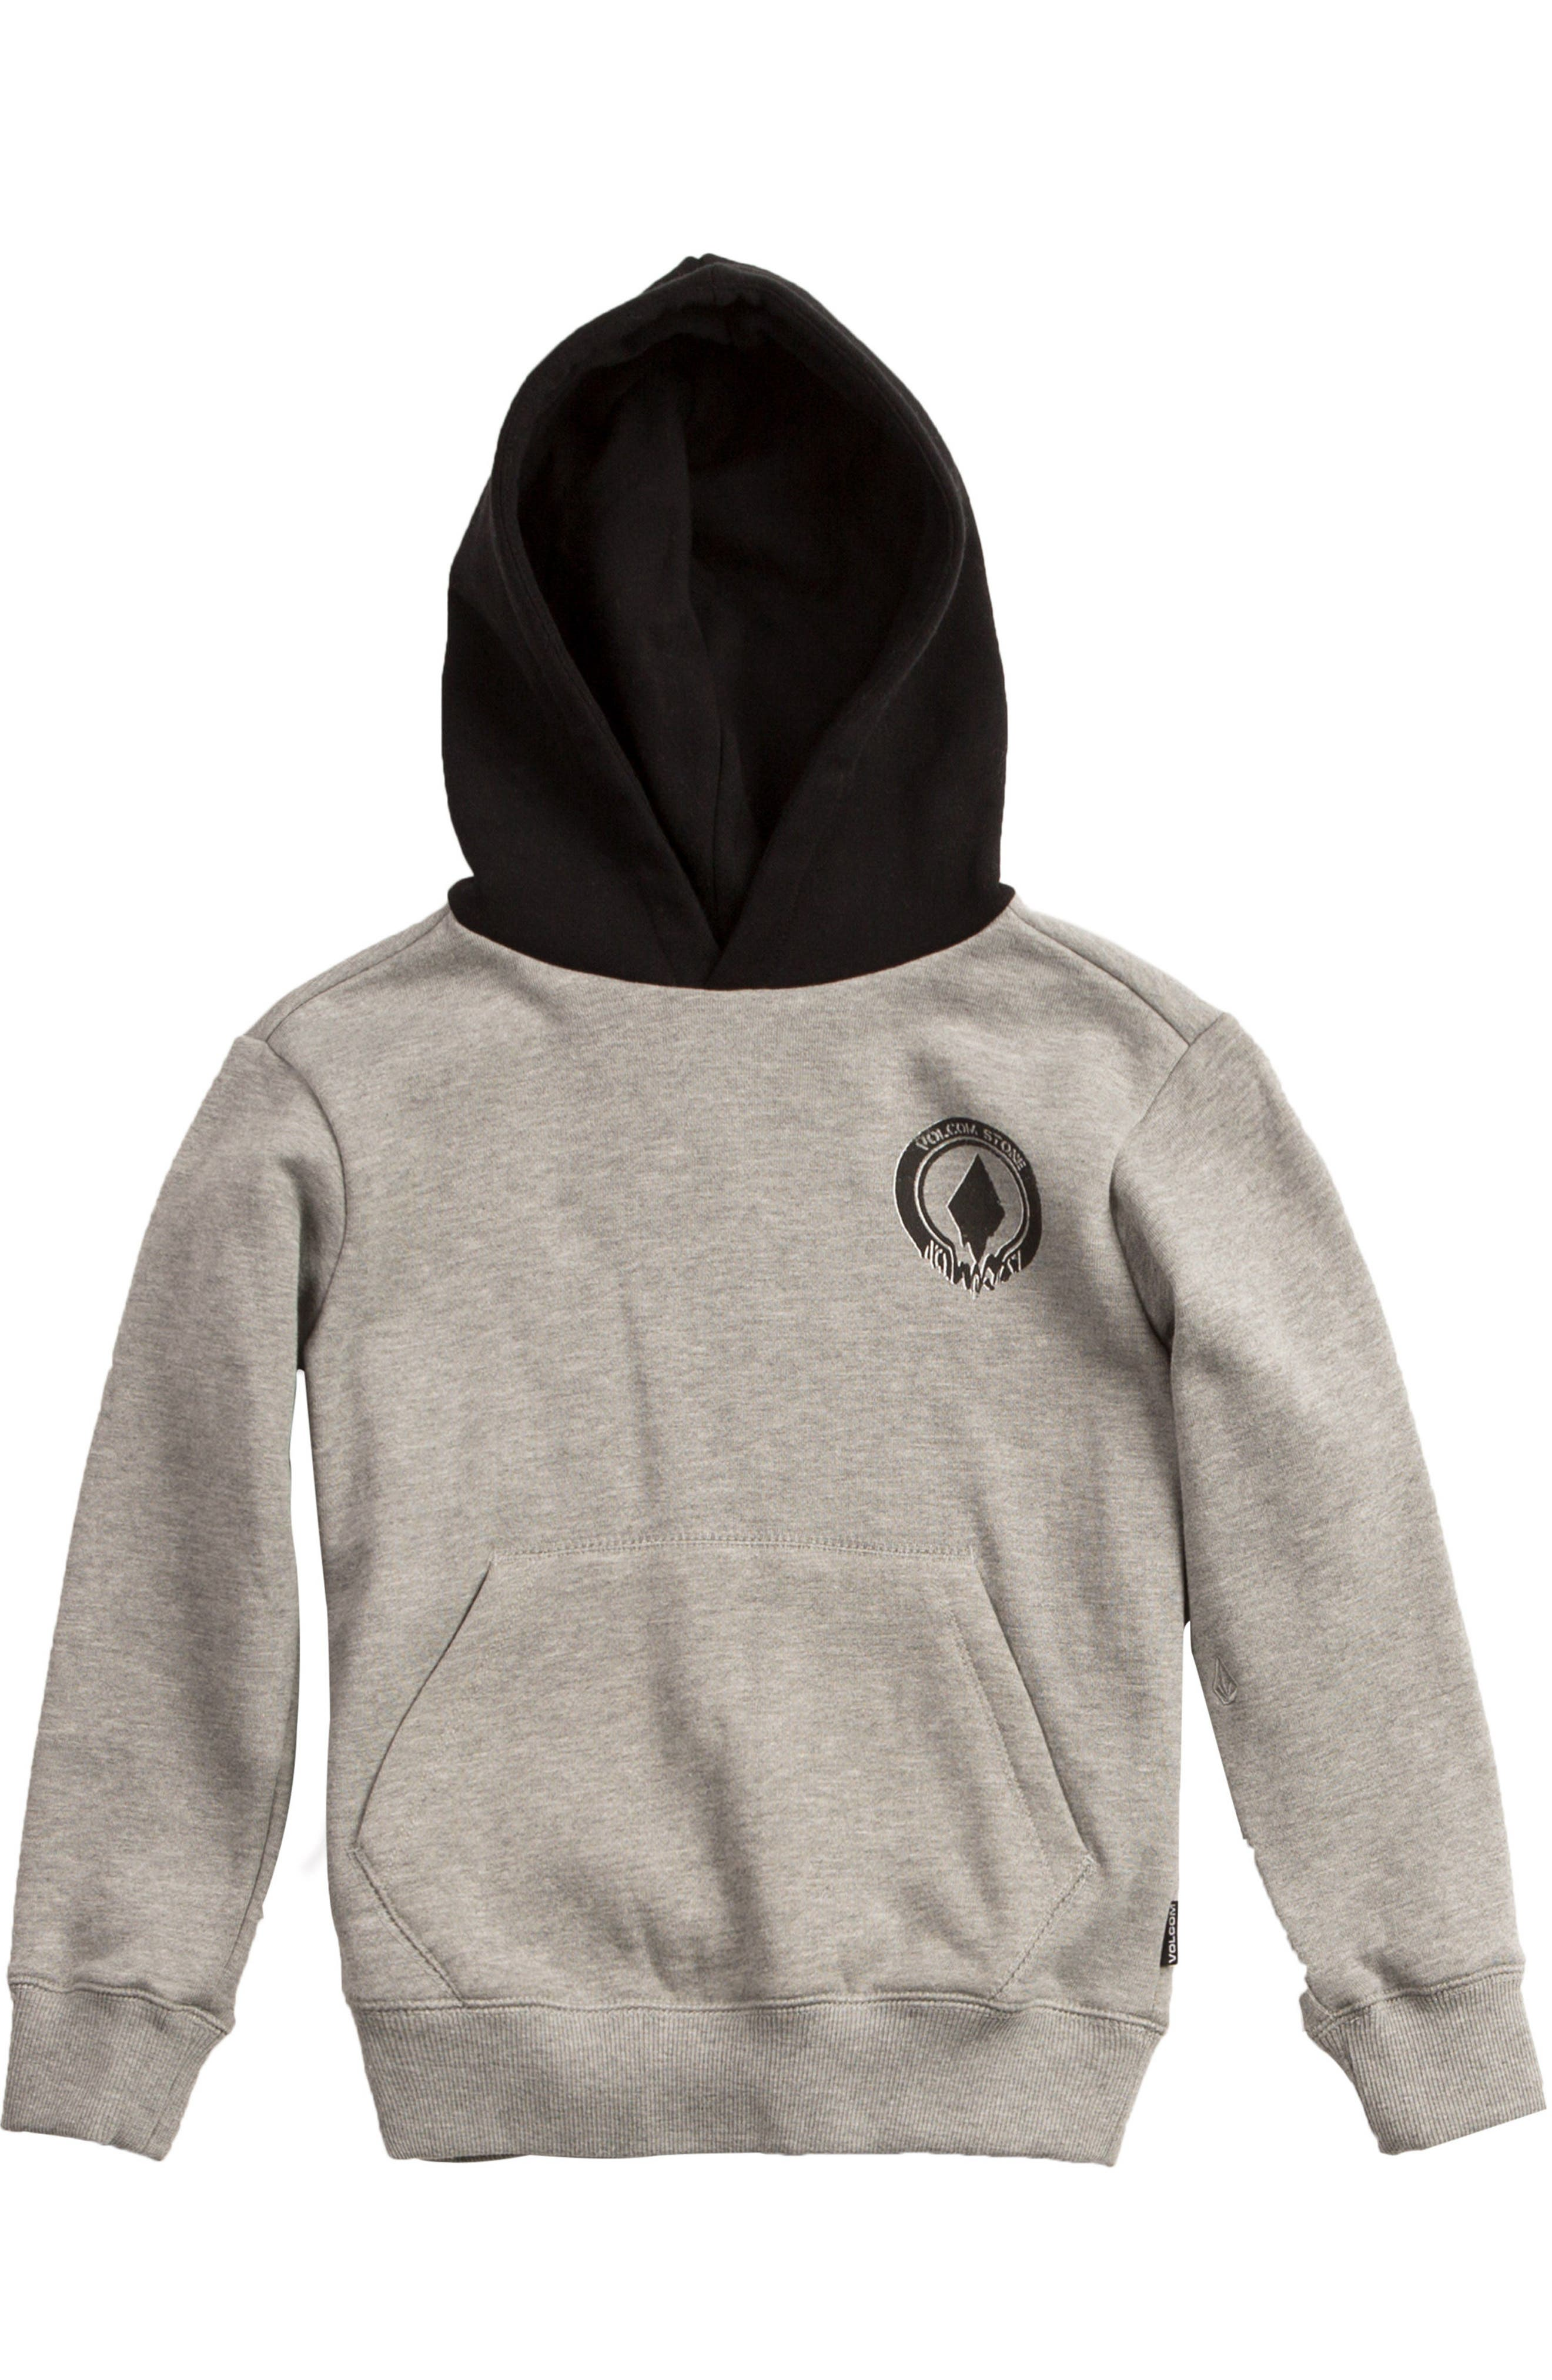 Supply Stone Graphic Pullover Hoodie,                             Main thumbnail 1, color,                             020